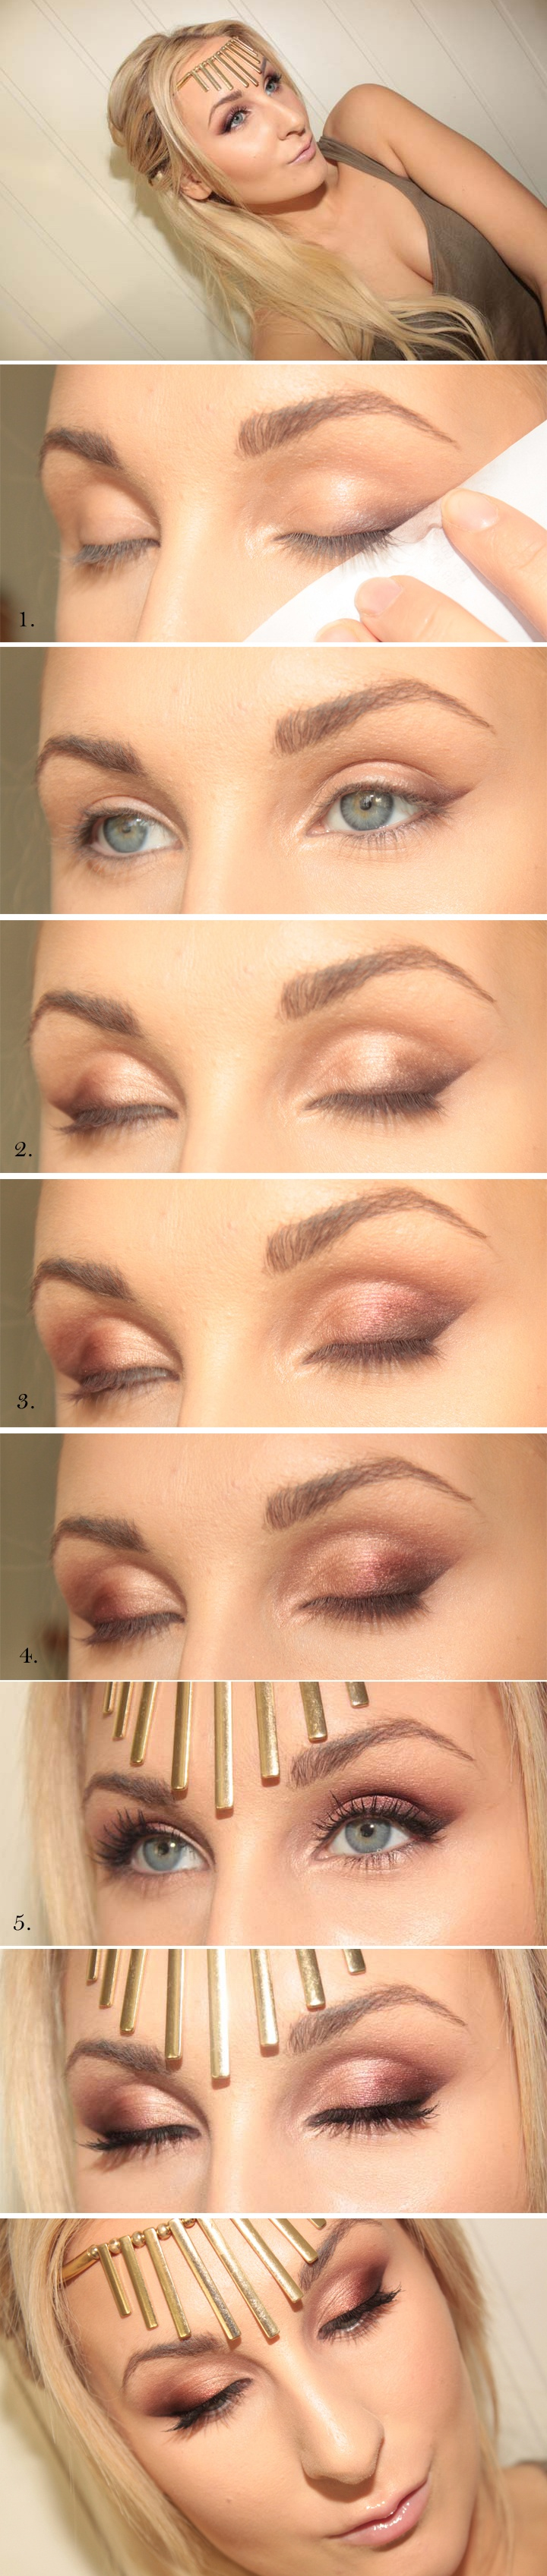 Tutorial – Arabian beauty http://blogg.veckorevyn.com/hiilen/2012/08/26/tutorial-arabiskinspirerad-makeup/